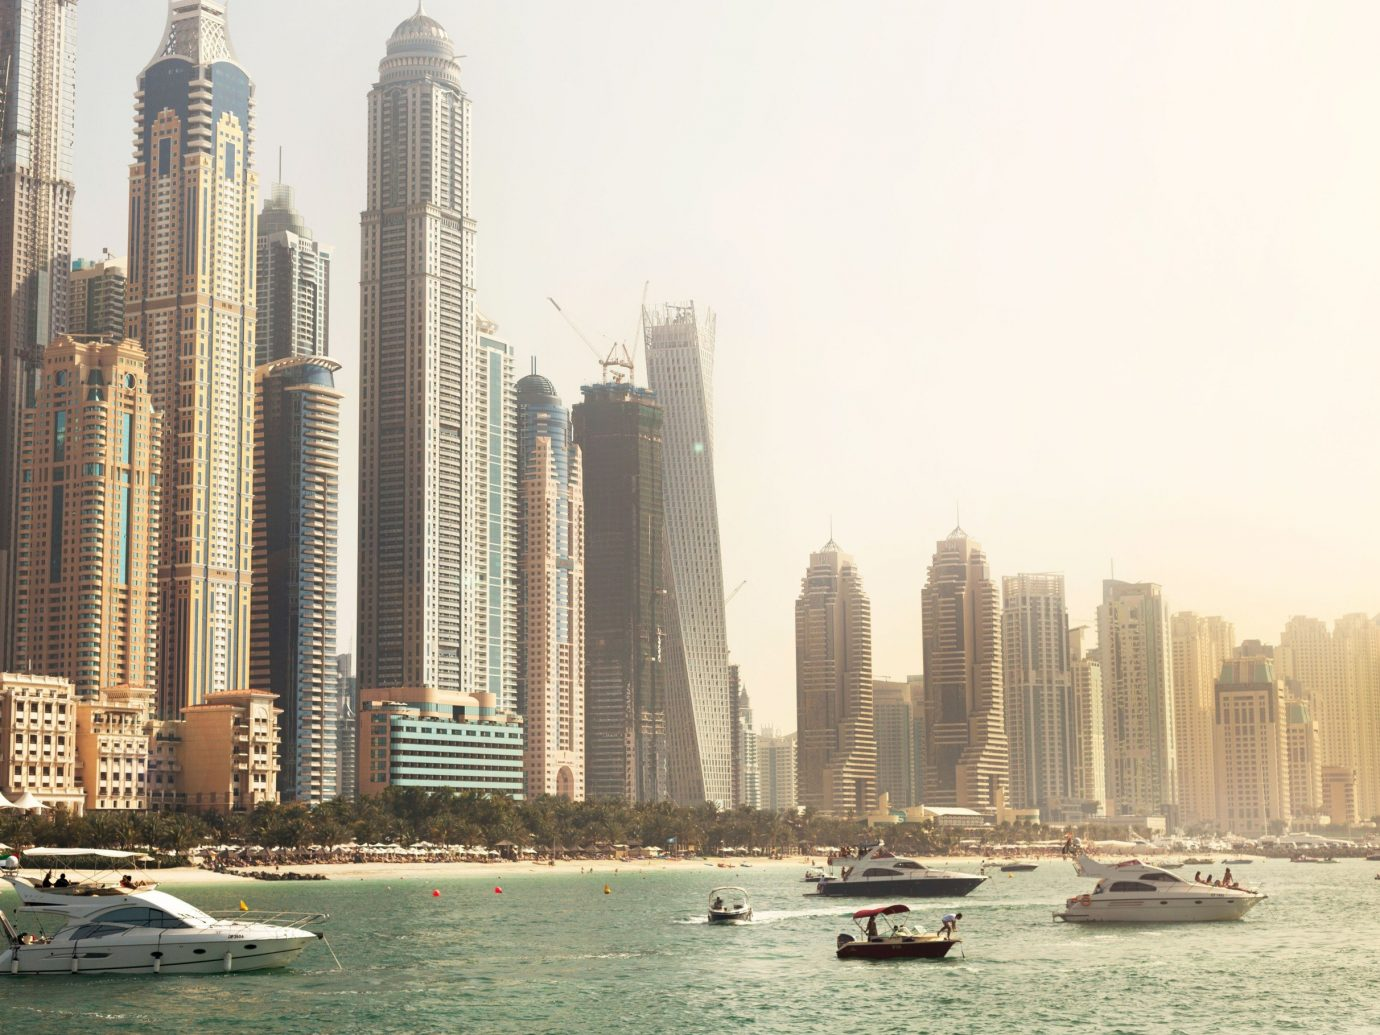 Budget outdoor sky skyscraper Boat landmark skyline City cityscape human settlement tower block metropolis Downtown background tower day several